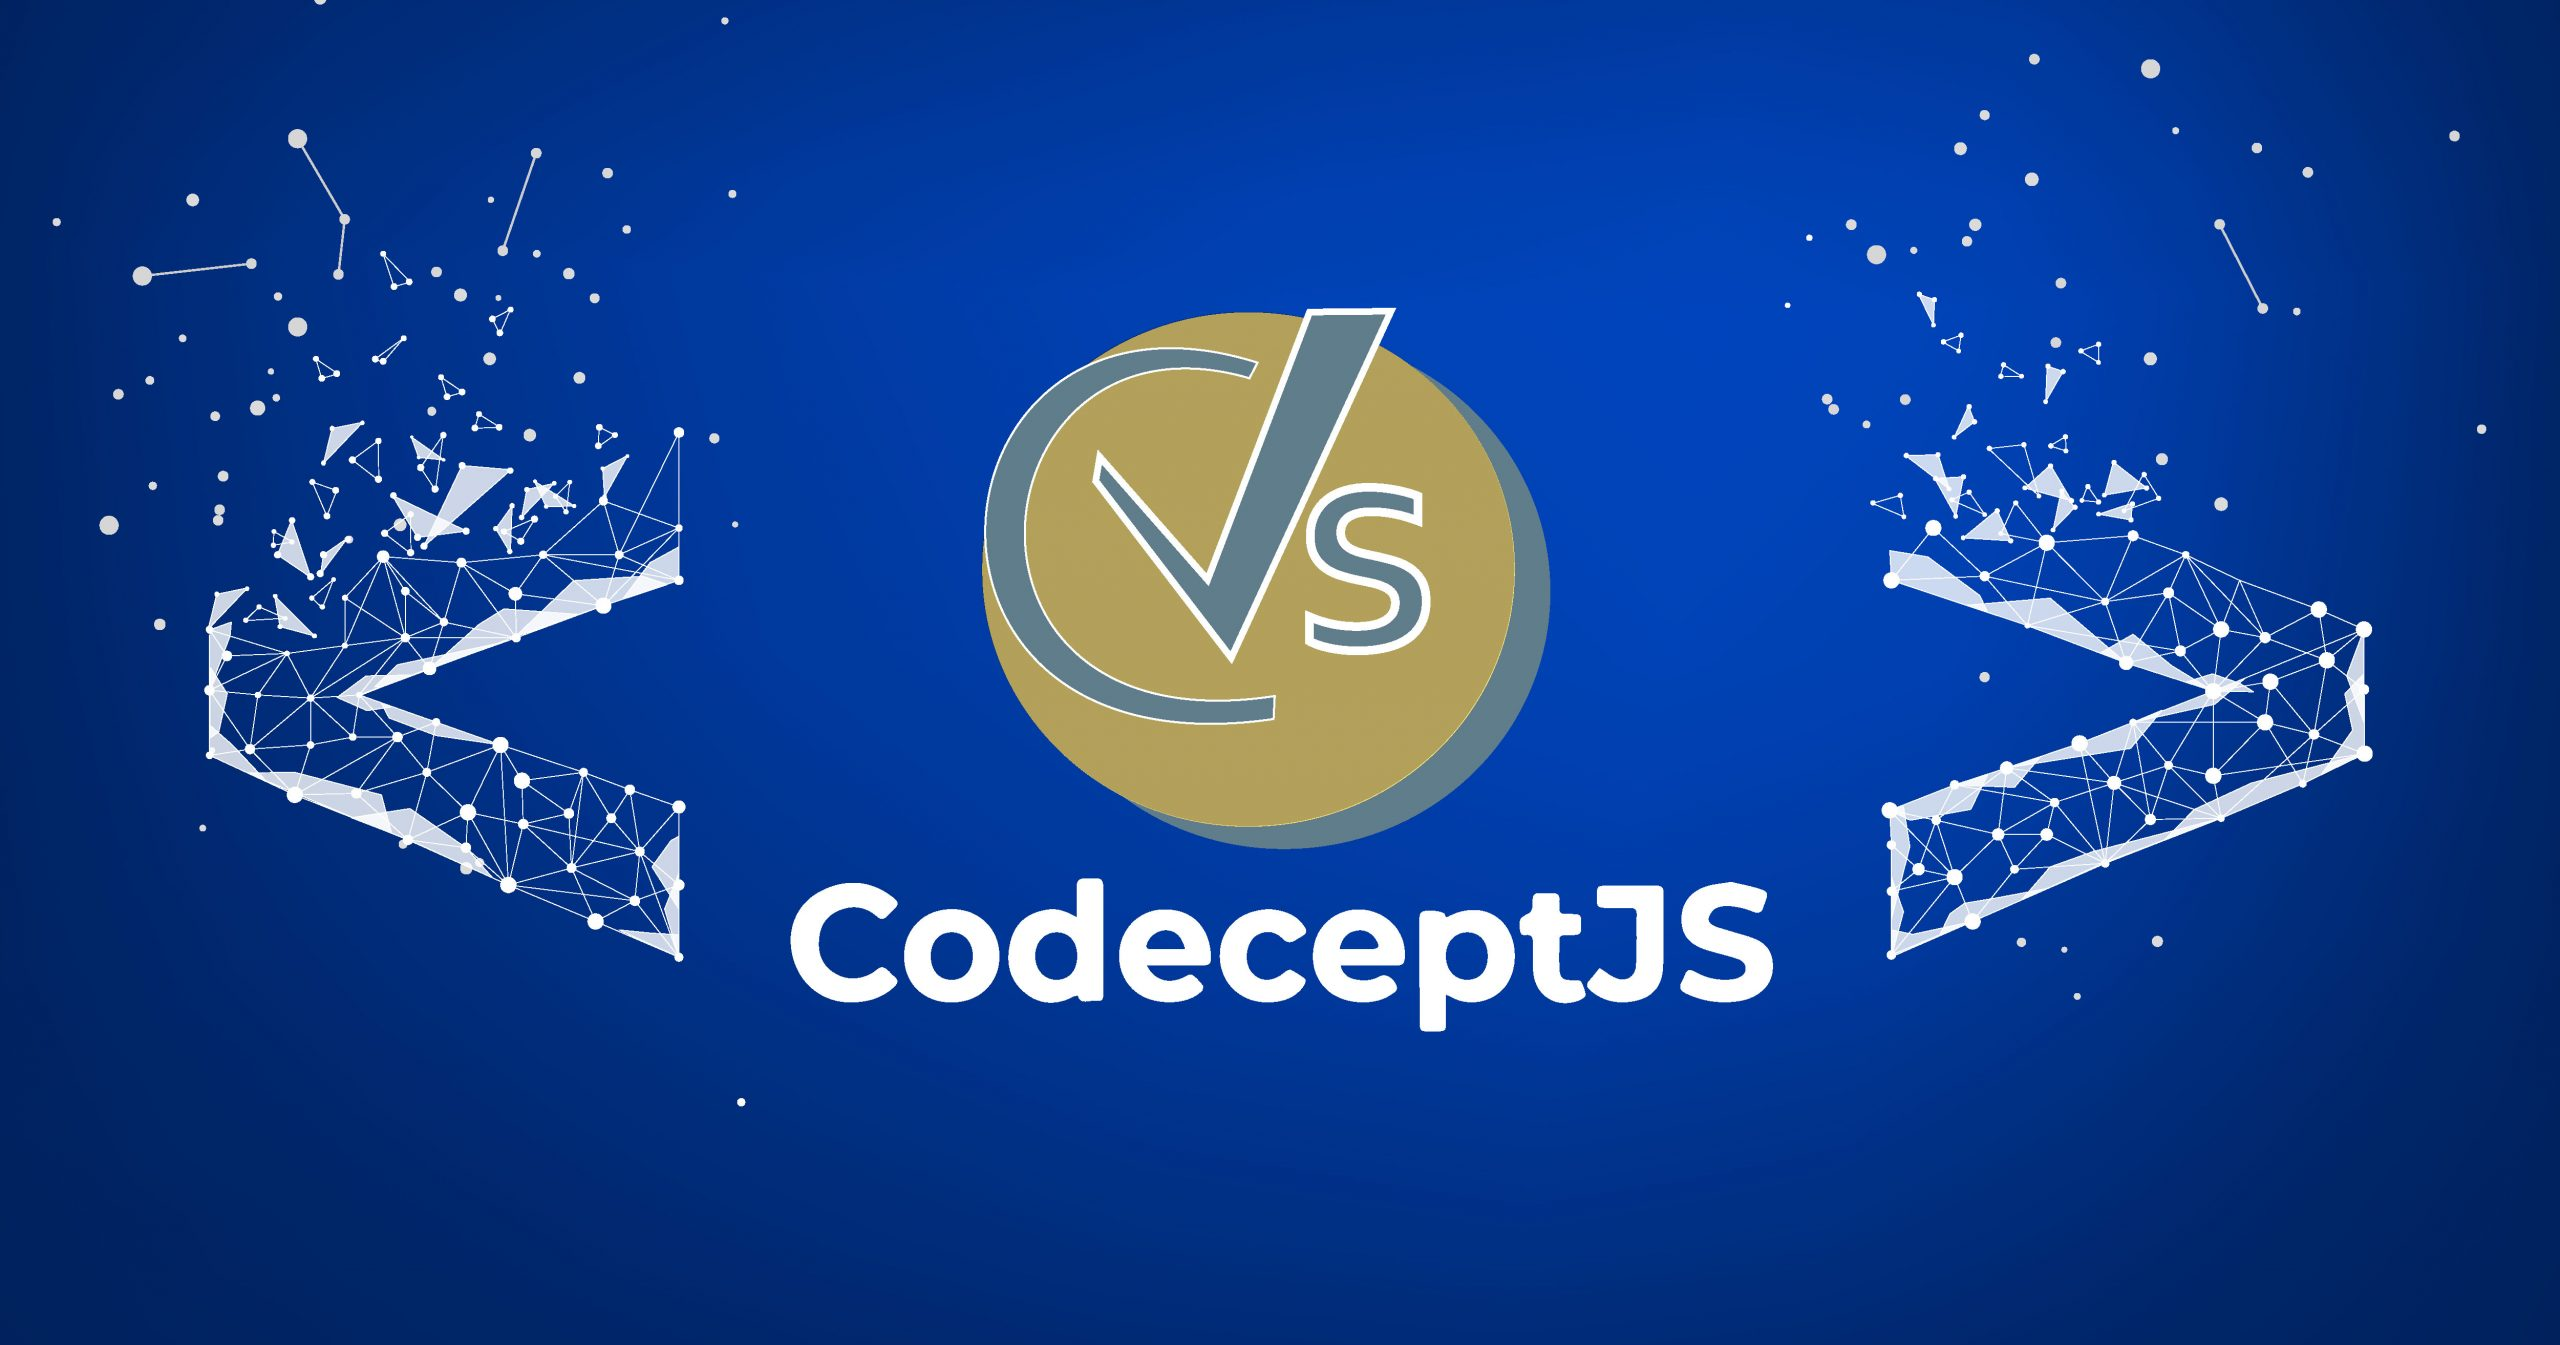 Embracing CodeceptJS